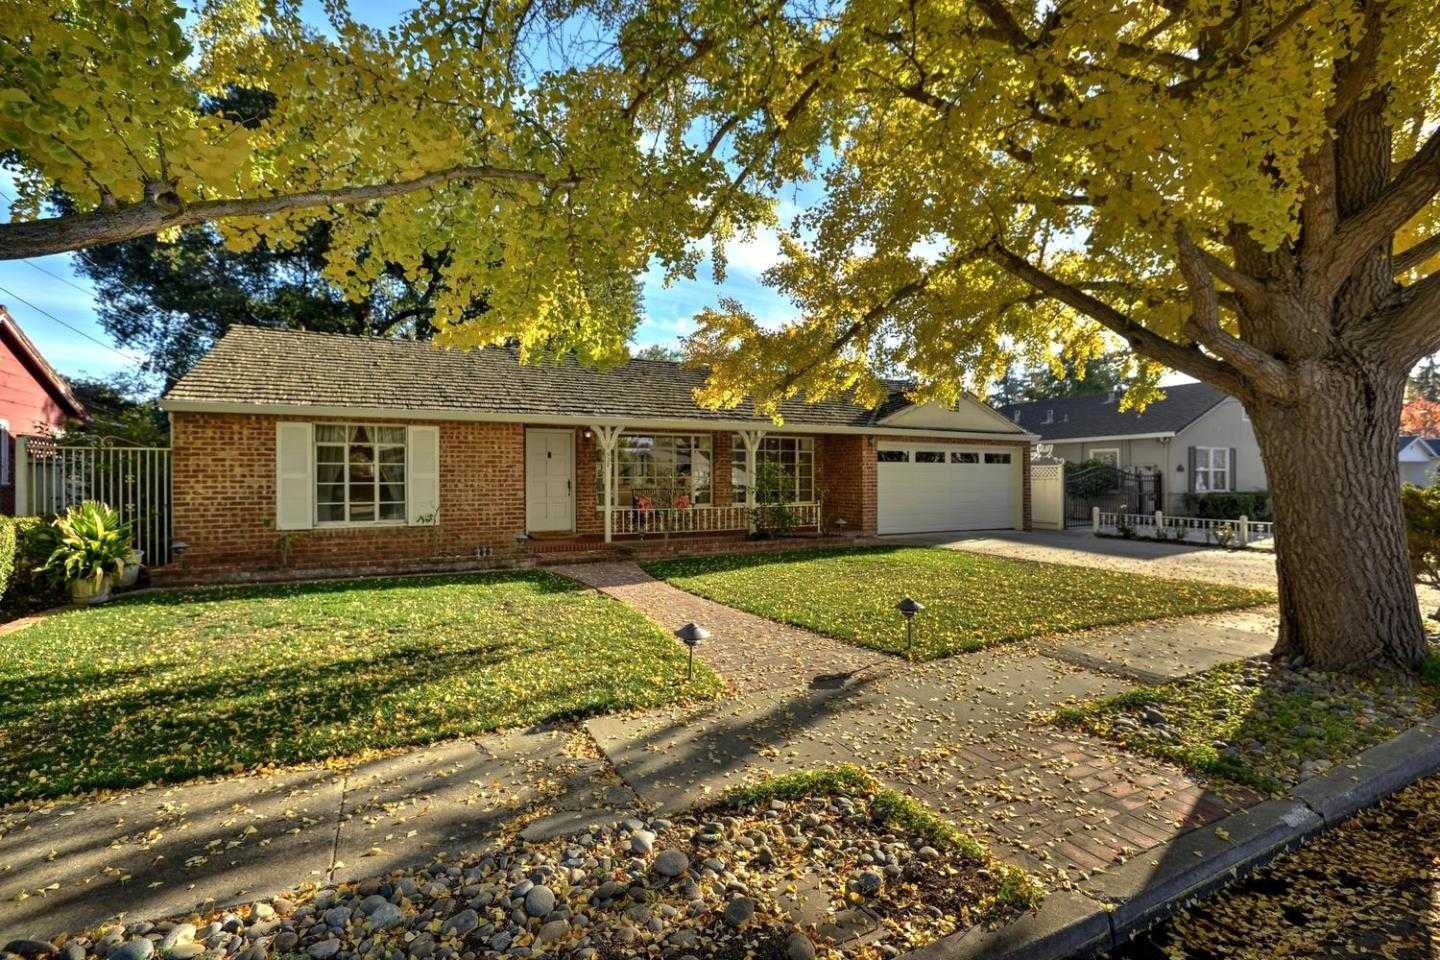 $1,100,000 - 3Br/3Ba -  for Sale in San Jose